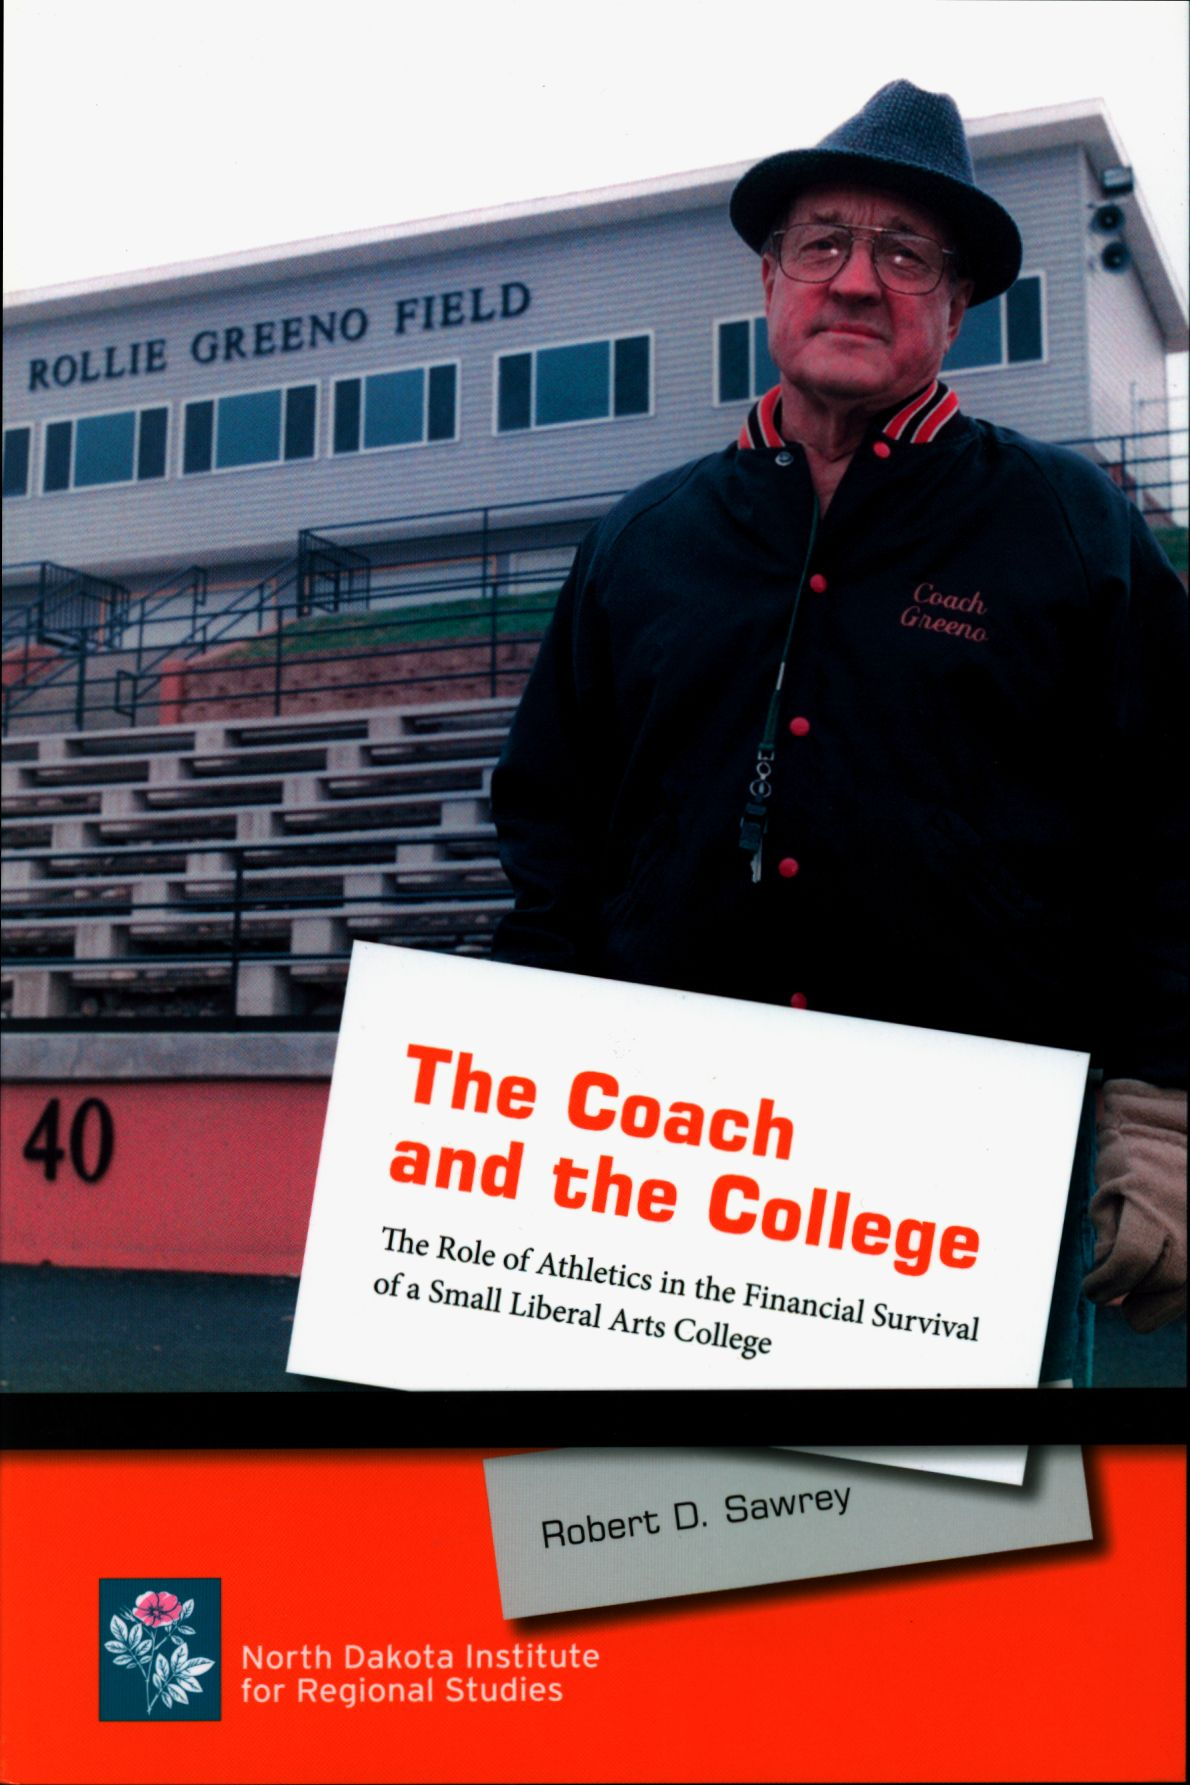 The Coach and the College